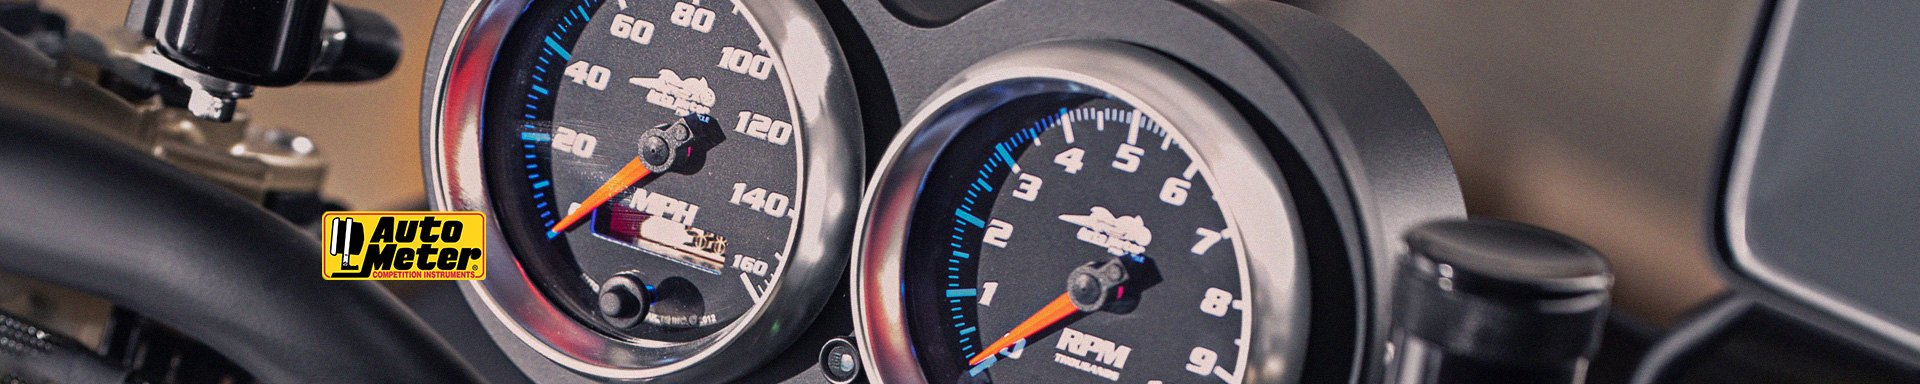 Auto Meter™ | Motorcycle Products at MOTORCYCLEiD com